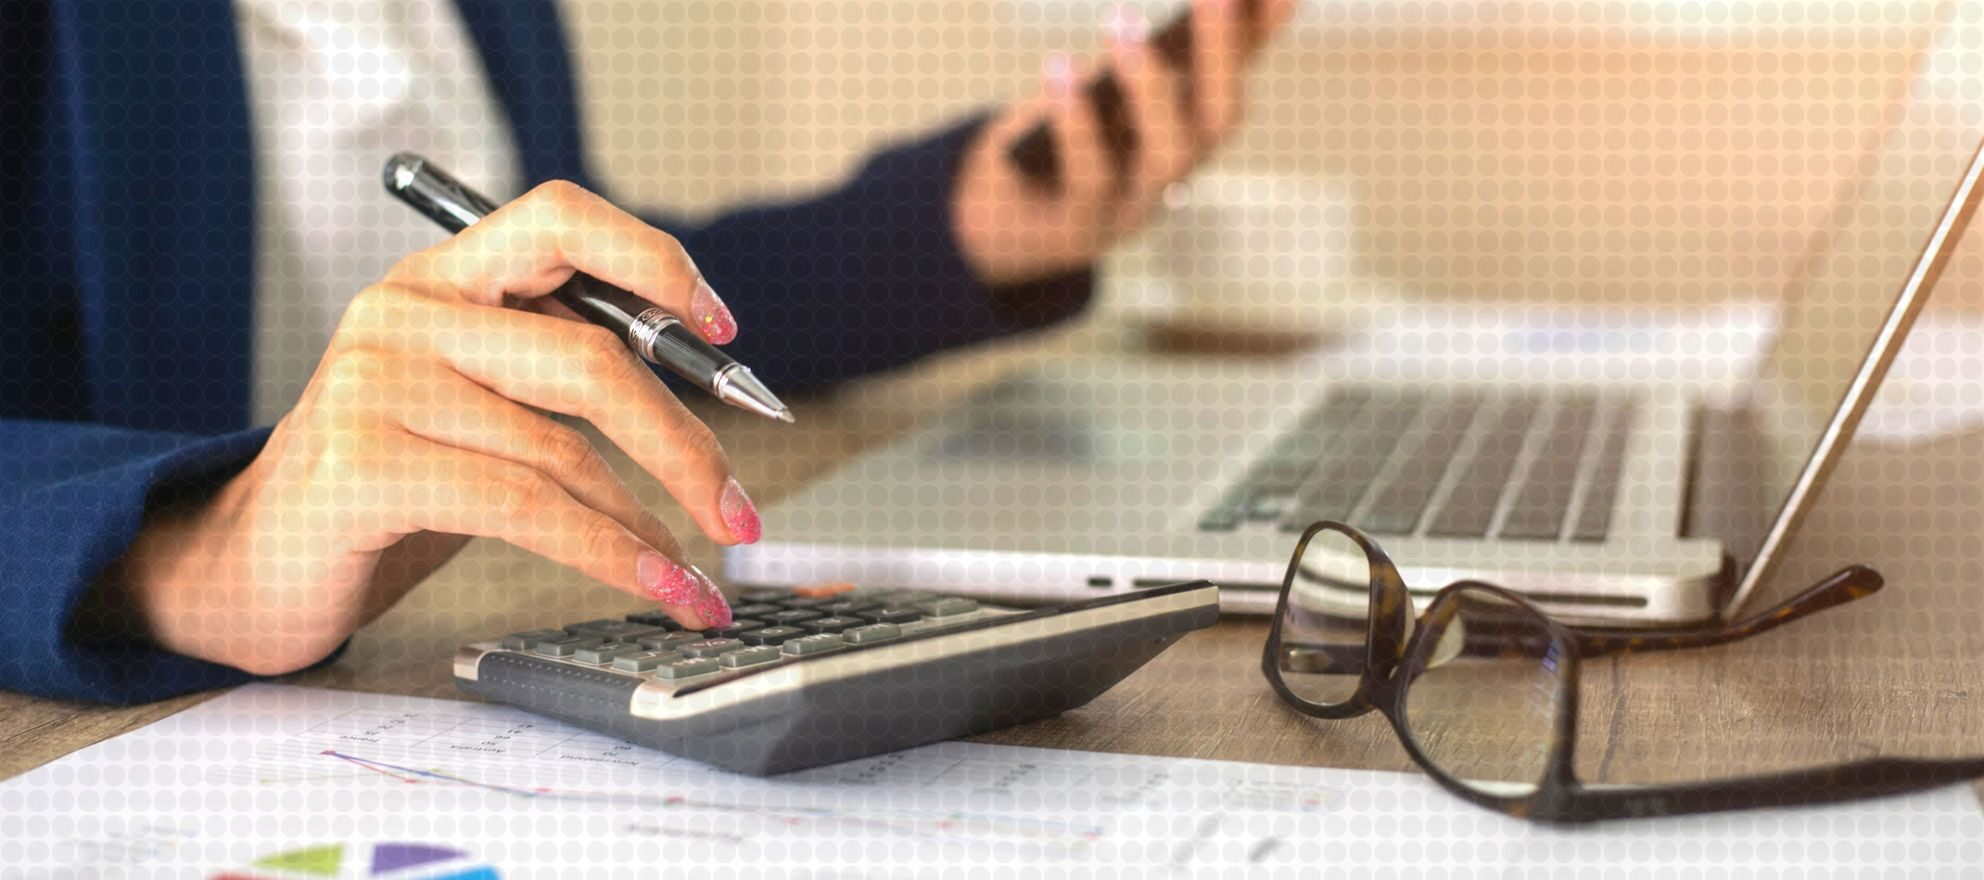 All that you need to know about filing Form 1099-MISC